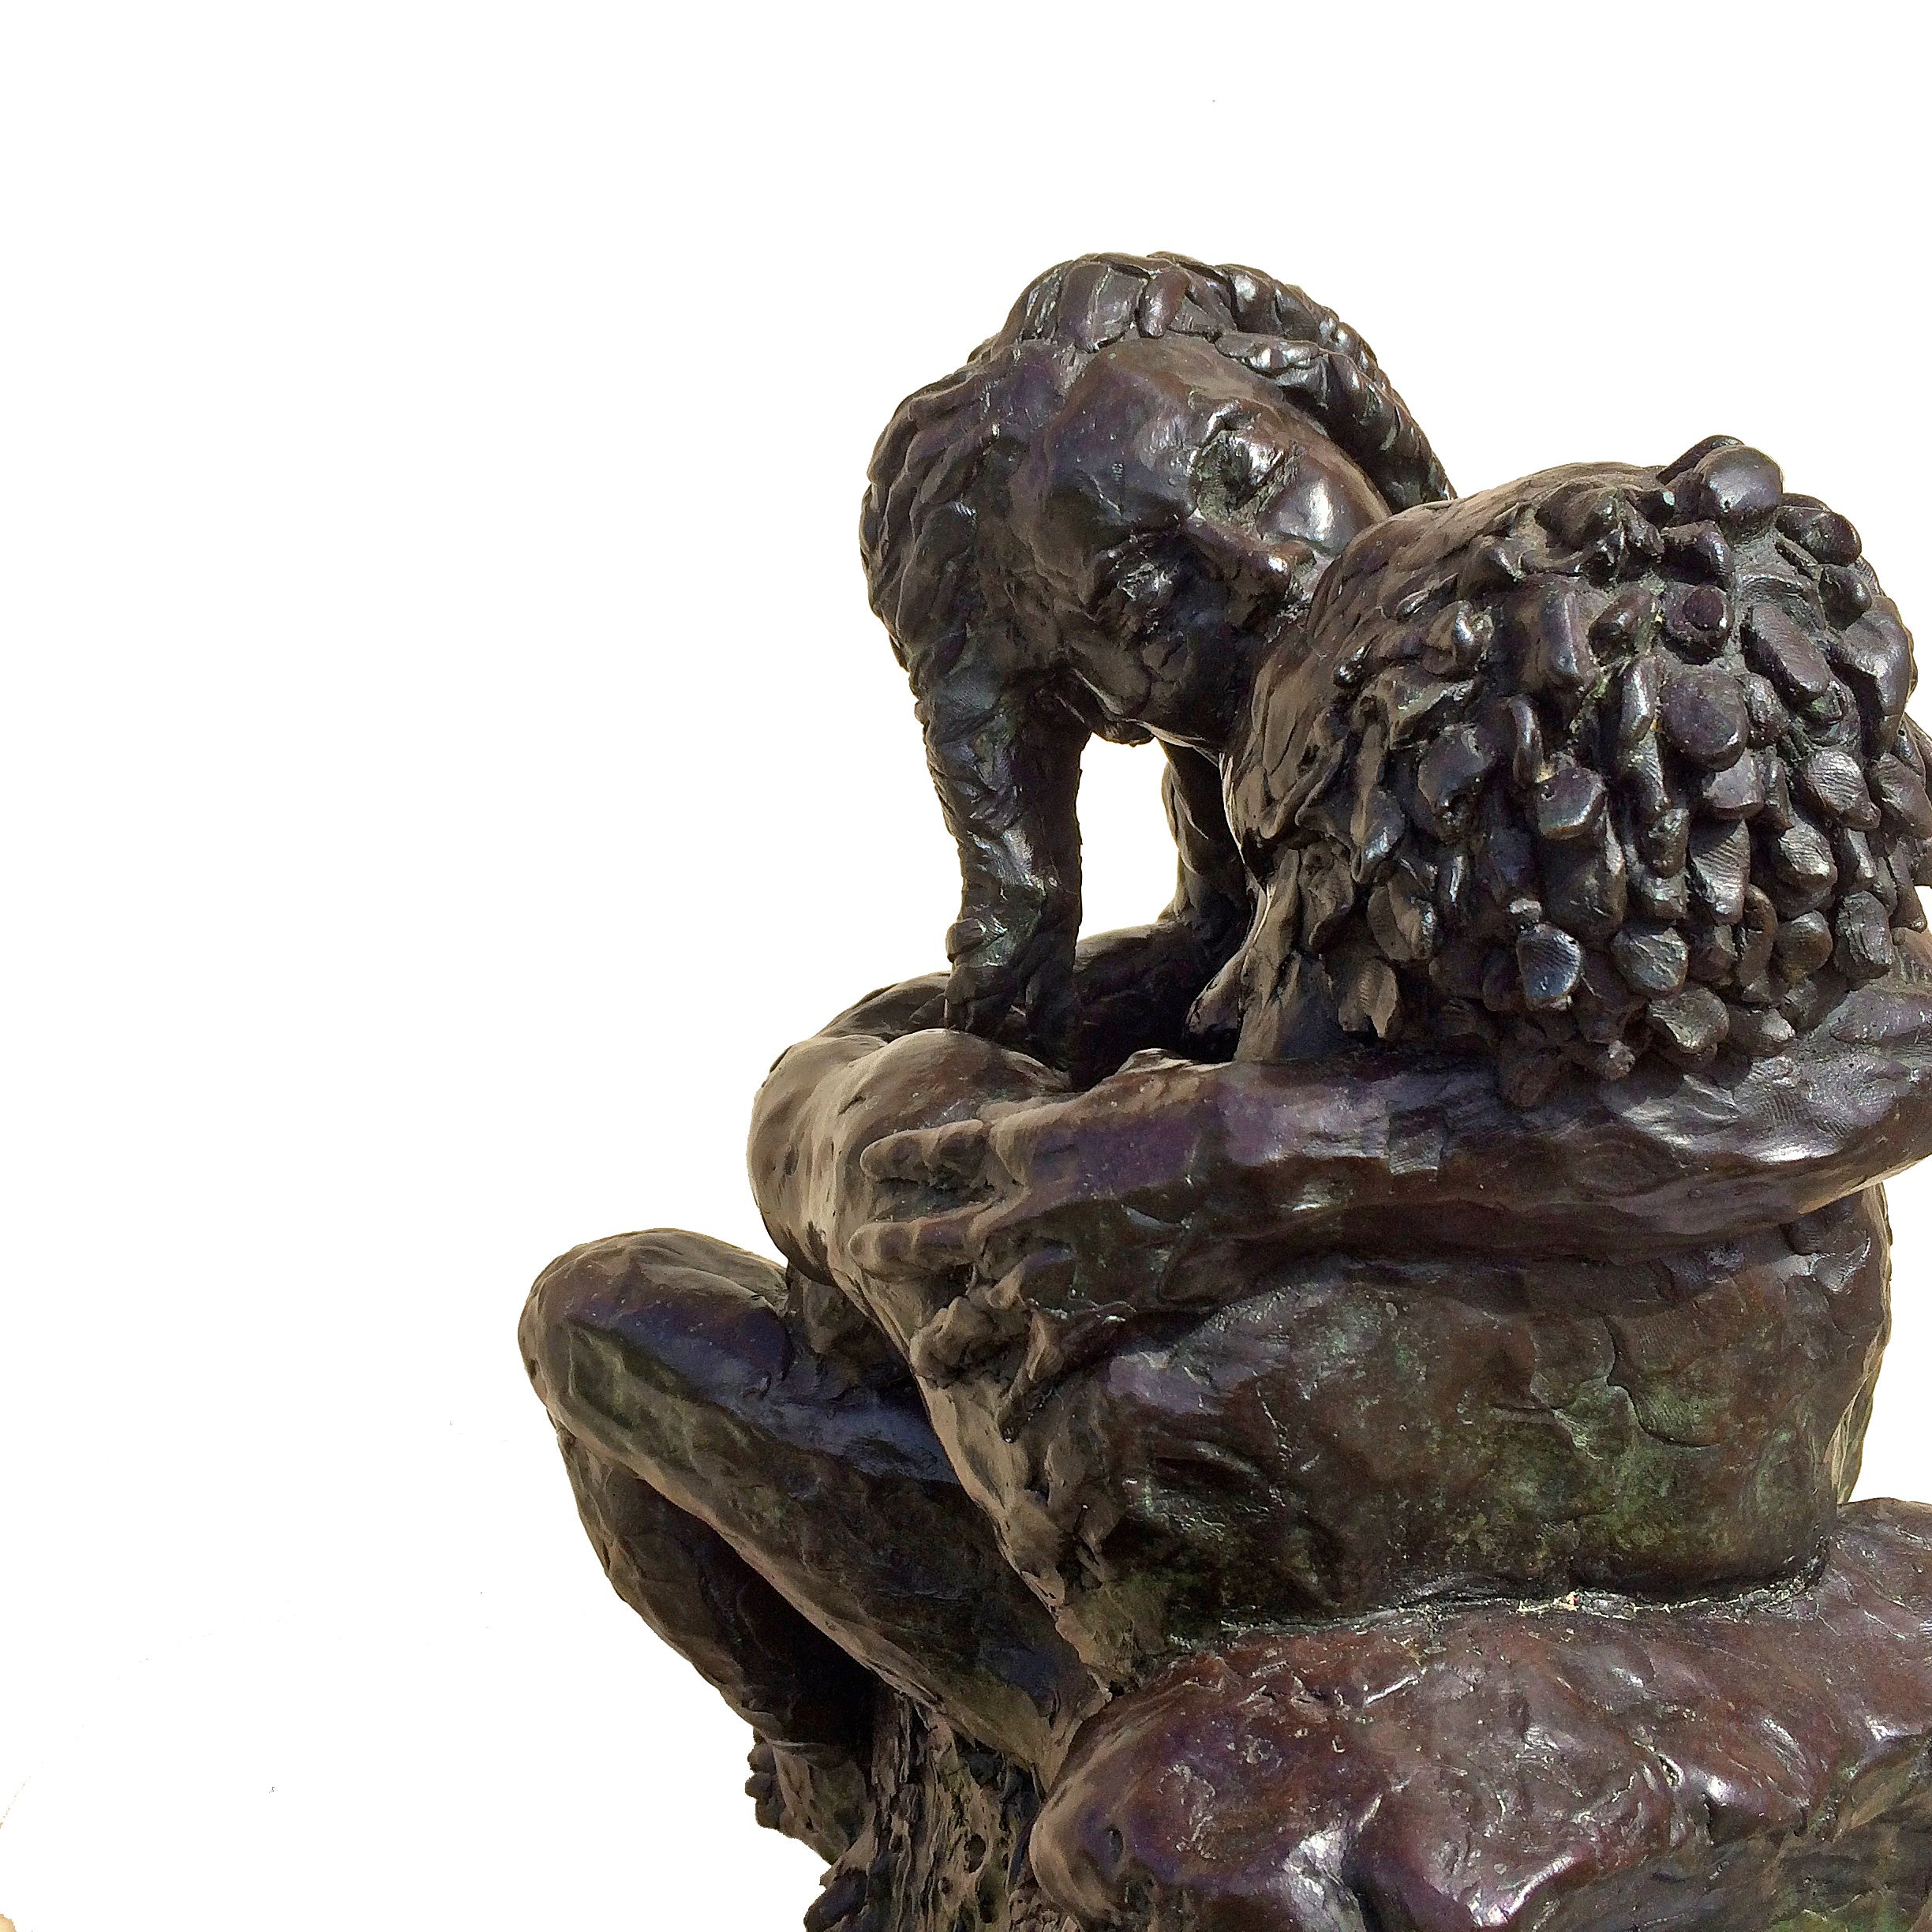 El Beso, The Kiss, bronze sculpture of couples kissing by artist Manuel Palacio